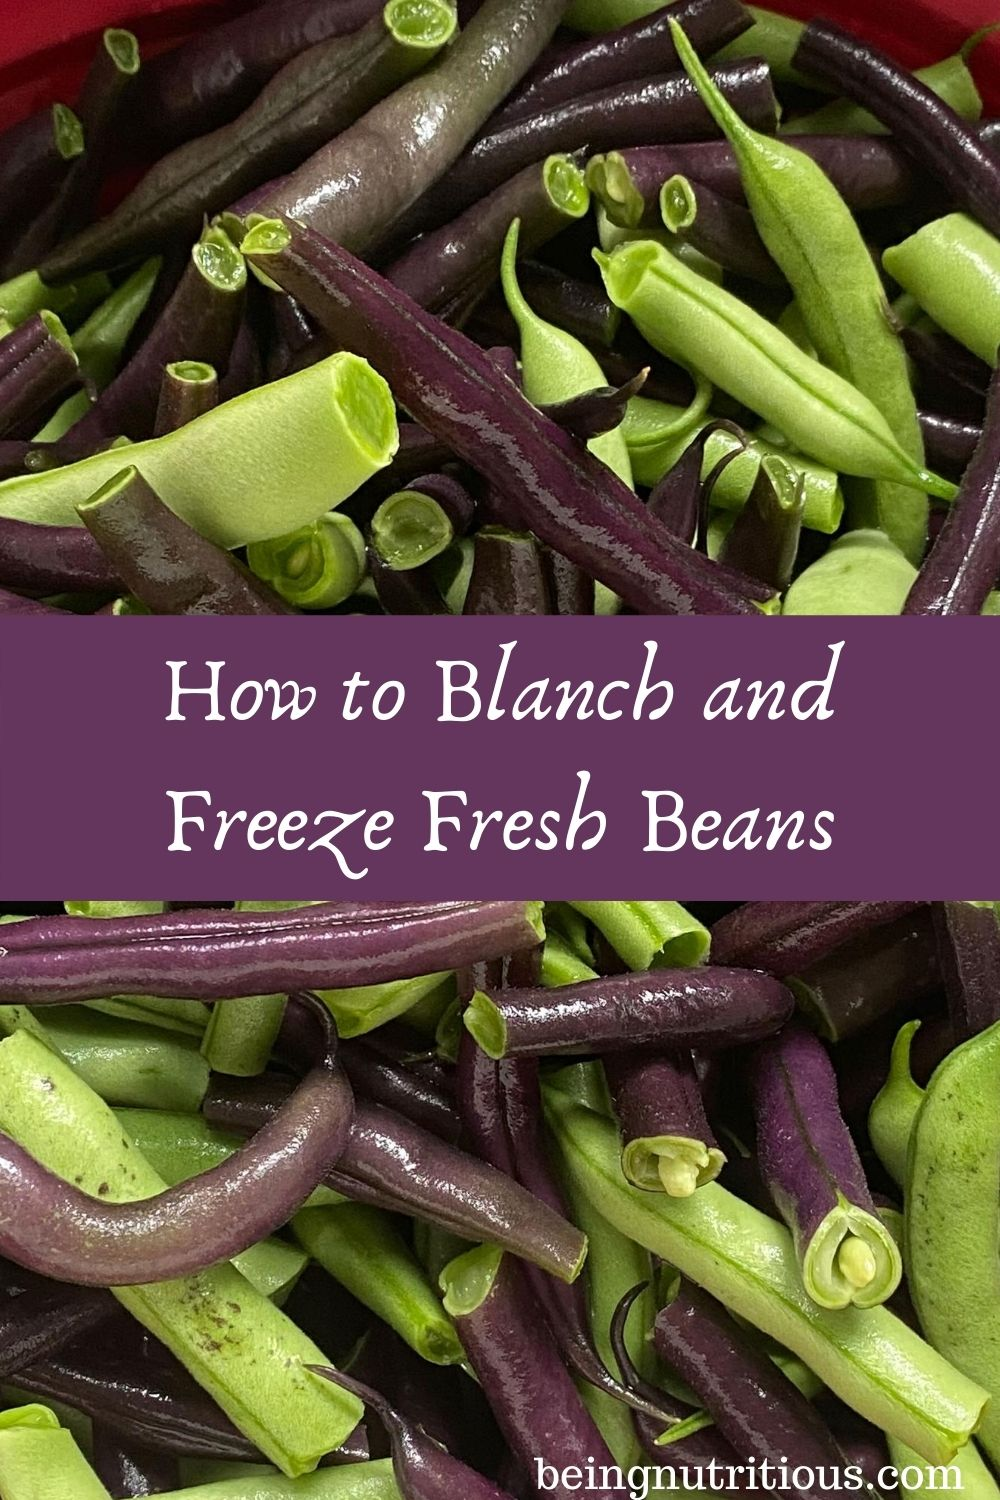 Close up of fresh beans, trimmed and snapped. Text overlay in purple rectangle: How to Blanch and Freeze Fresh Beans.